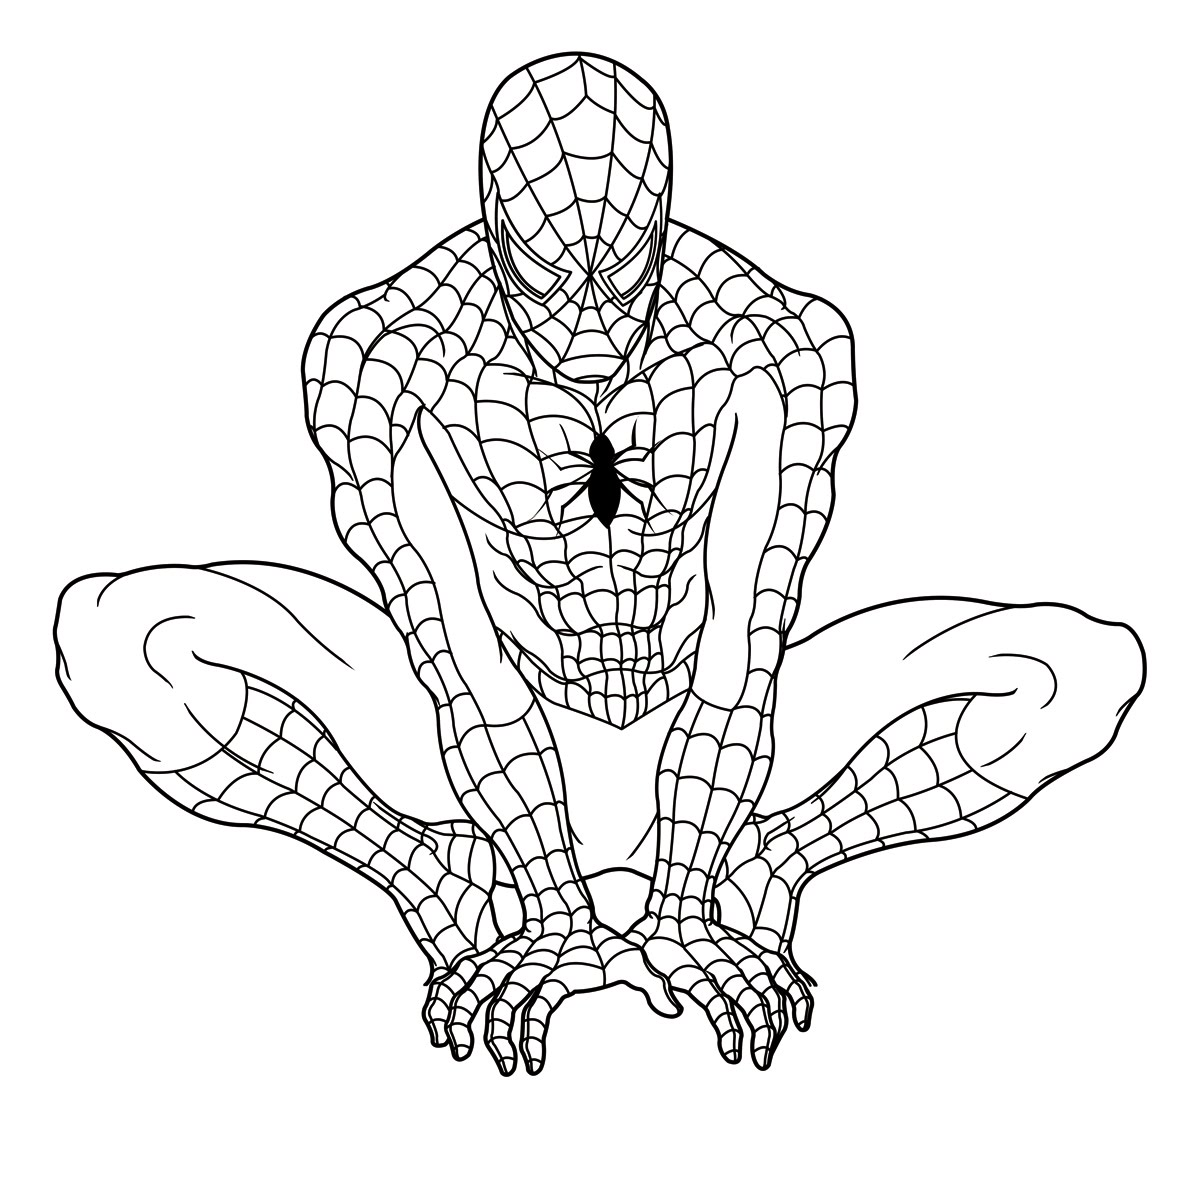 1181x1181 Spiderman Coloring Pages Coloring Pages For Kids